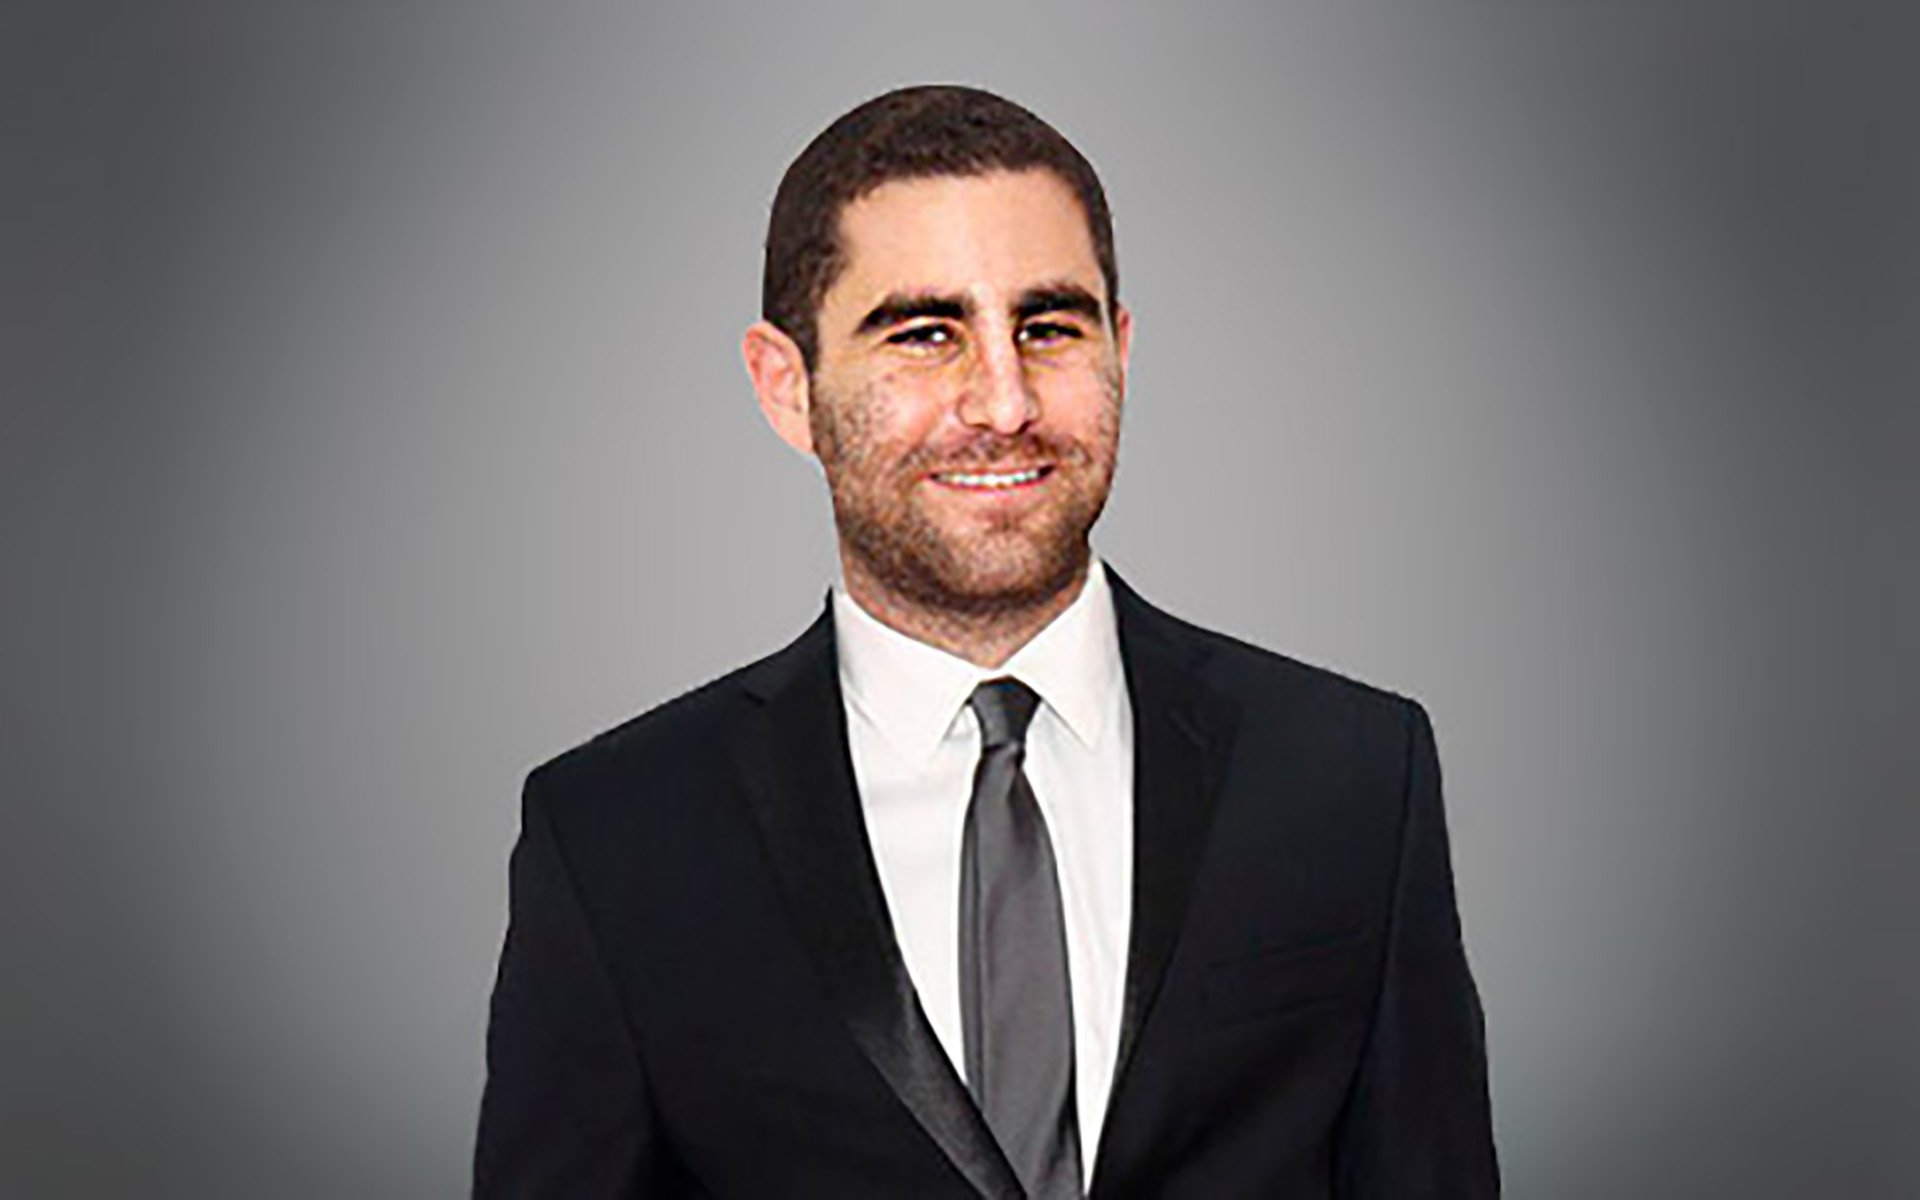 Legendary Bitcoin Advocate Charlie Shrem Now Advisor of Eligma